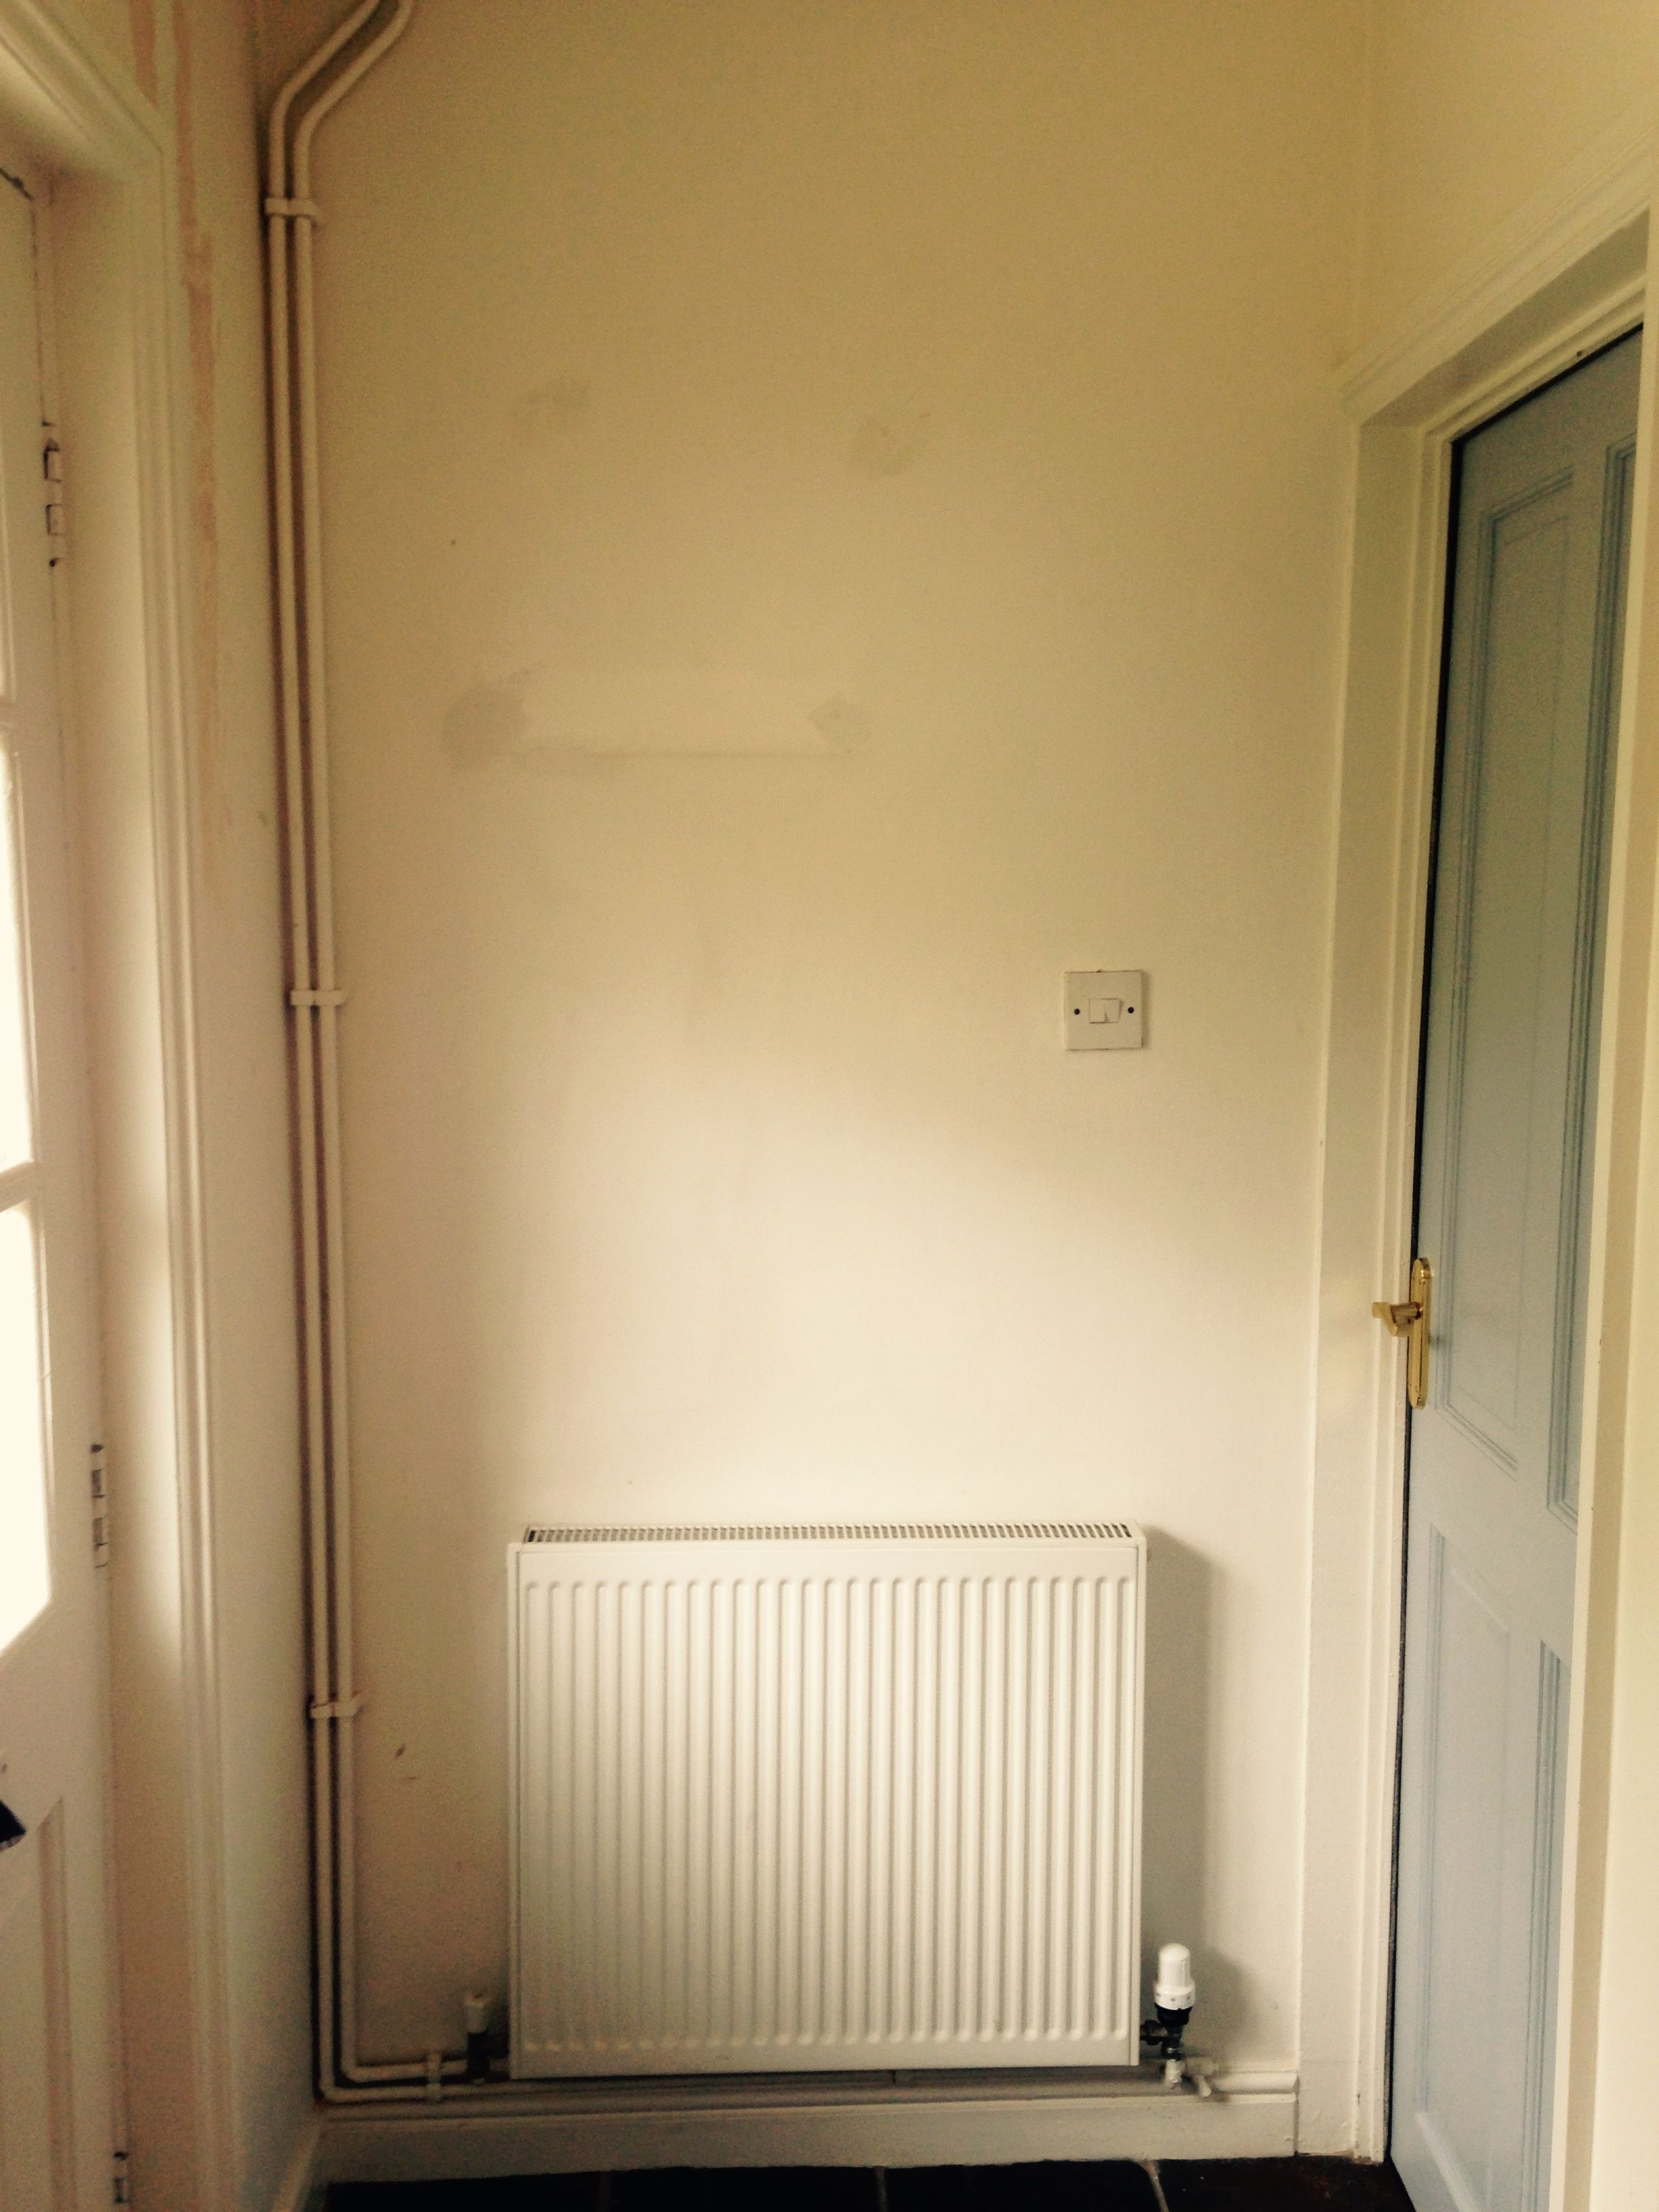 My Tiny Hallway Needs A Focus Point Above The Radiator